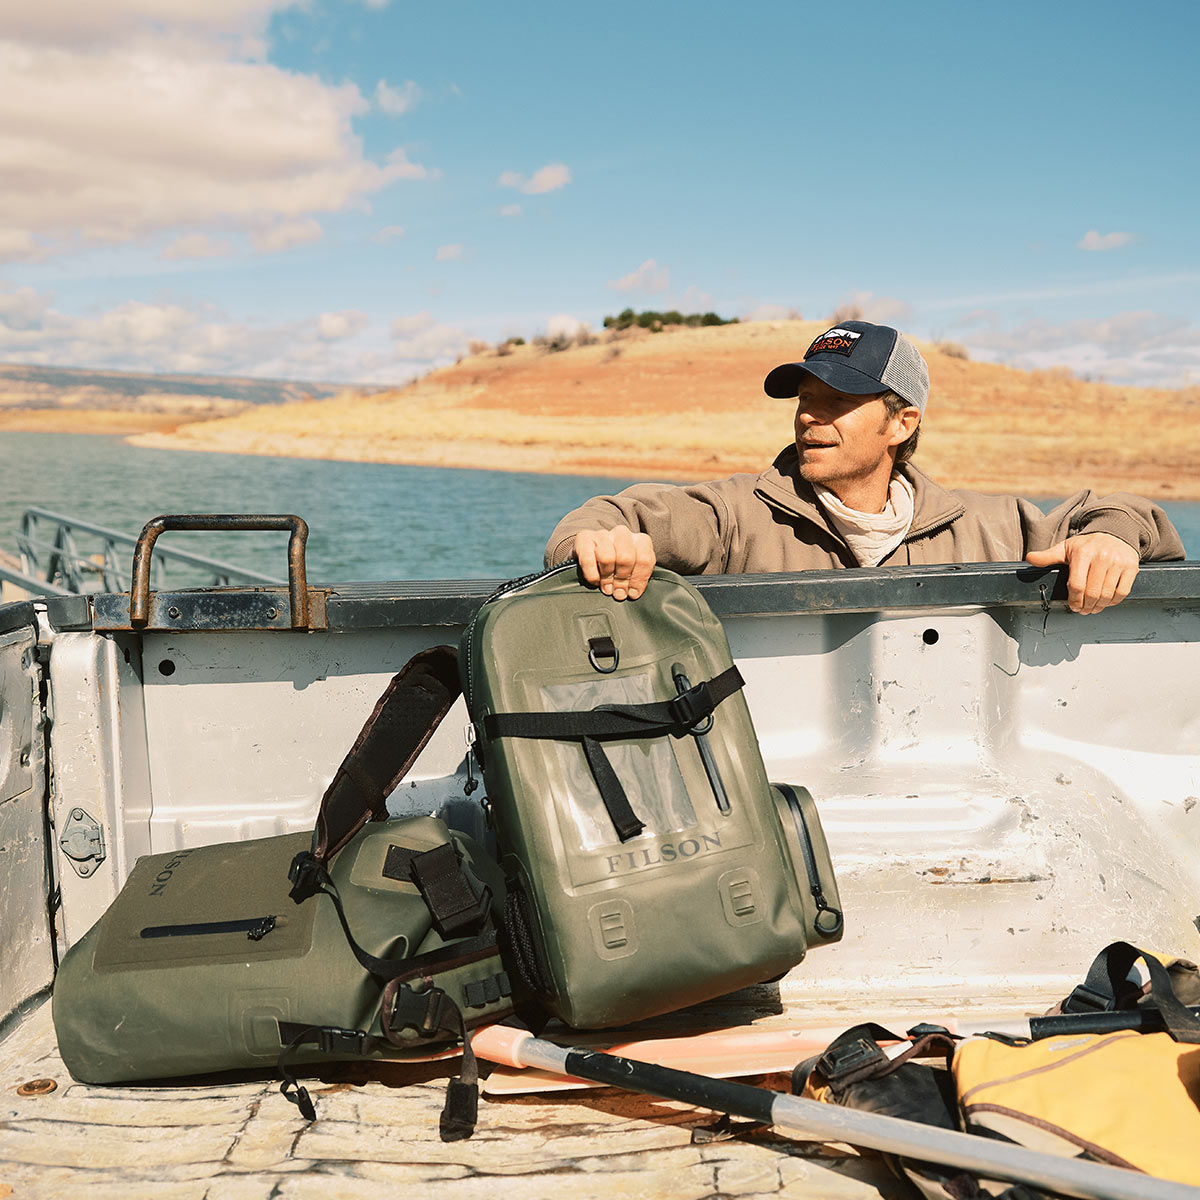 Filson Backpack Dry Bag, keeps your gear dry in any weather